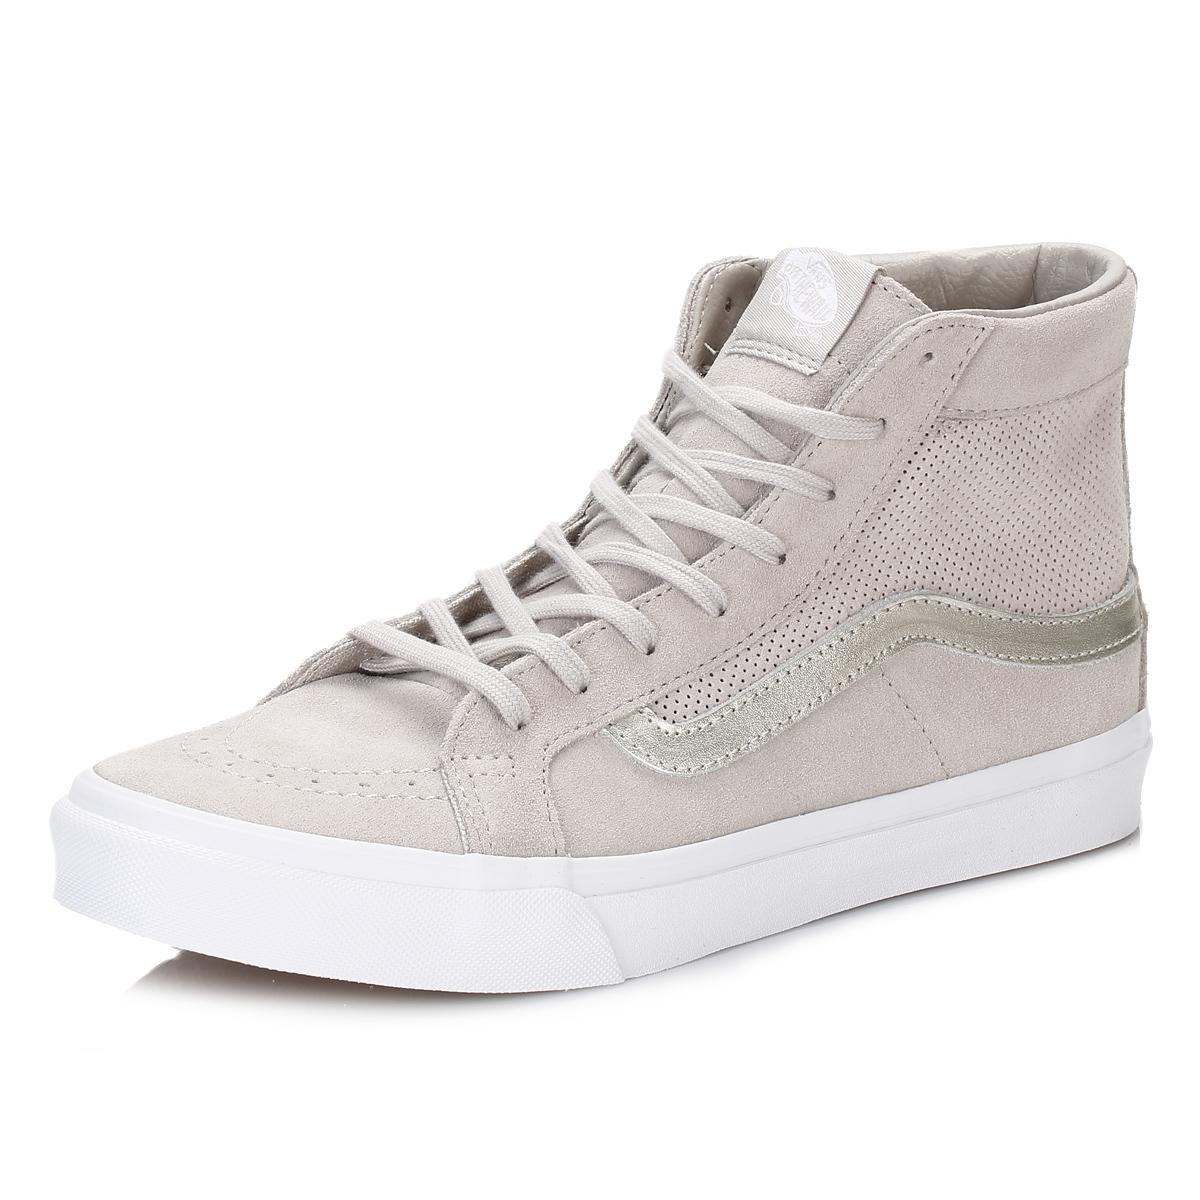 02b8b0531 Vans Womens Silver Cloud/true White Perforated Suede Sk8-hi Trainers ...